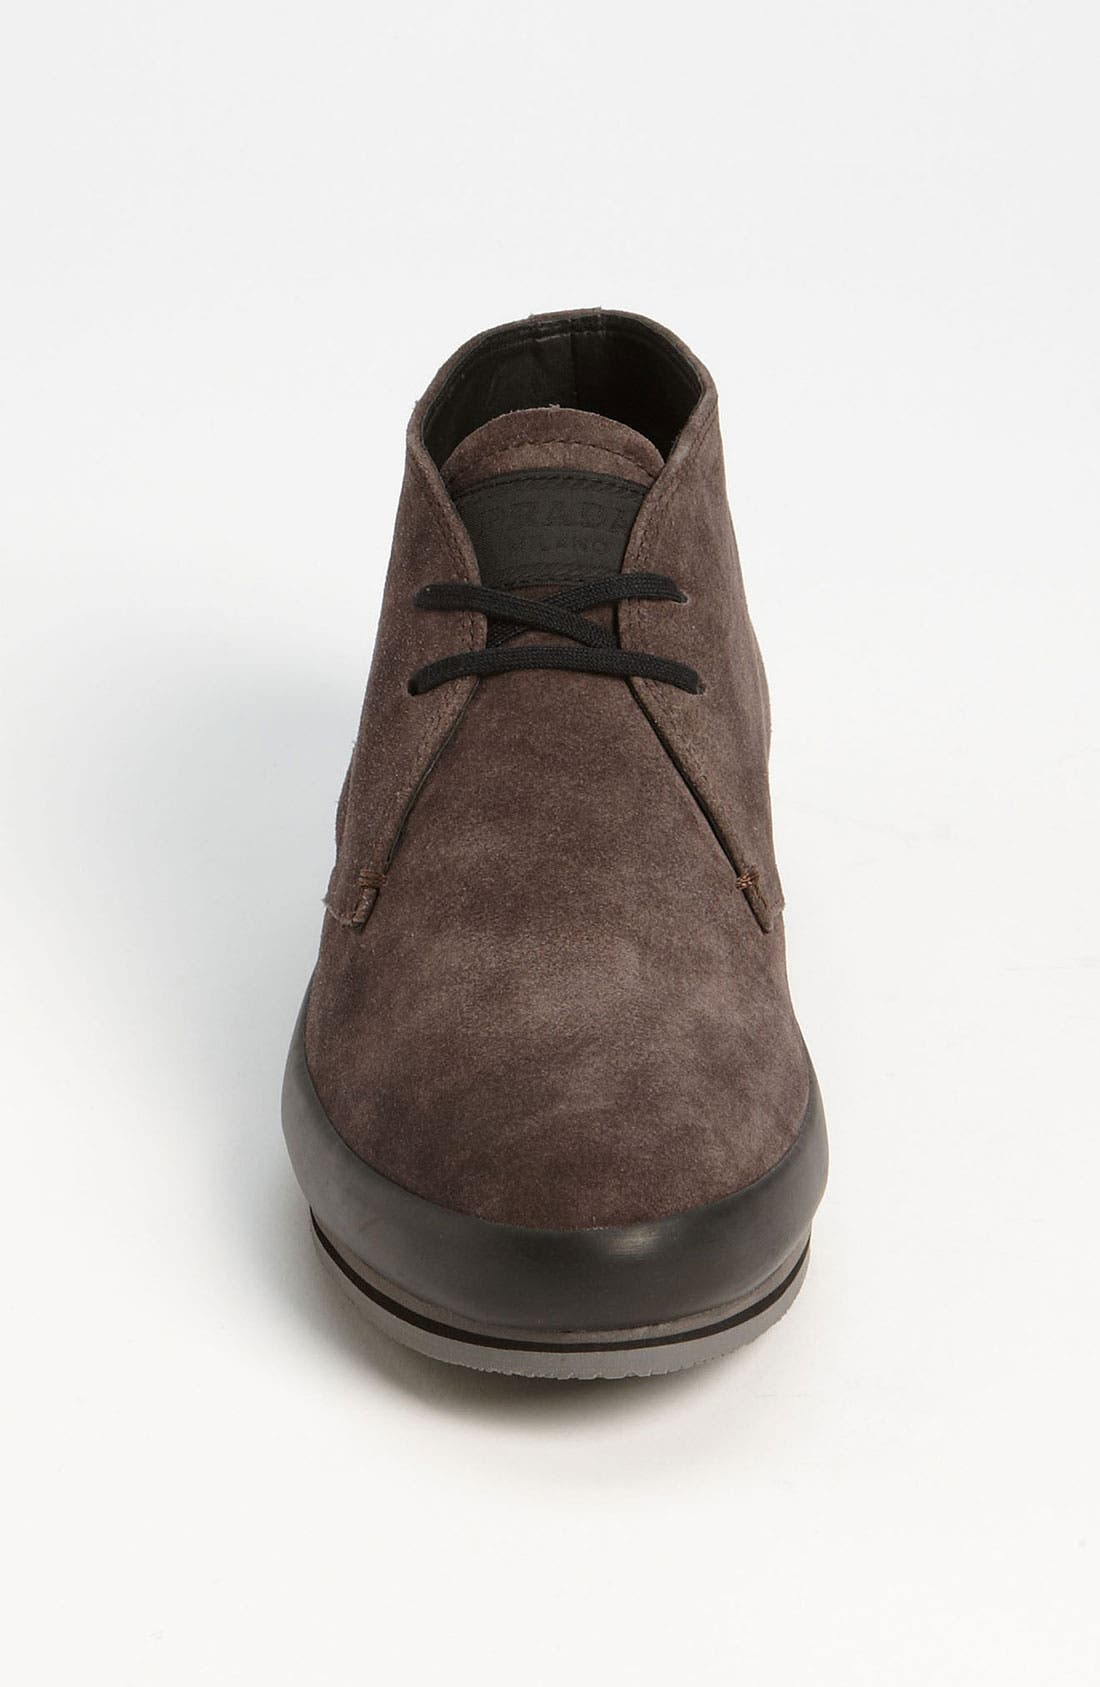 Suede Chukka Boot,                             Alternate thumbnail 2, color,                             060